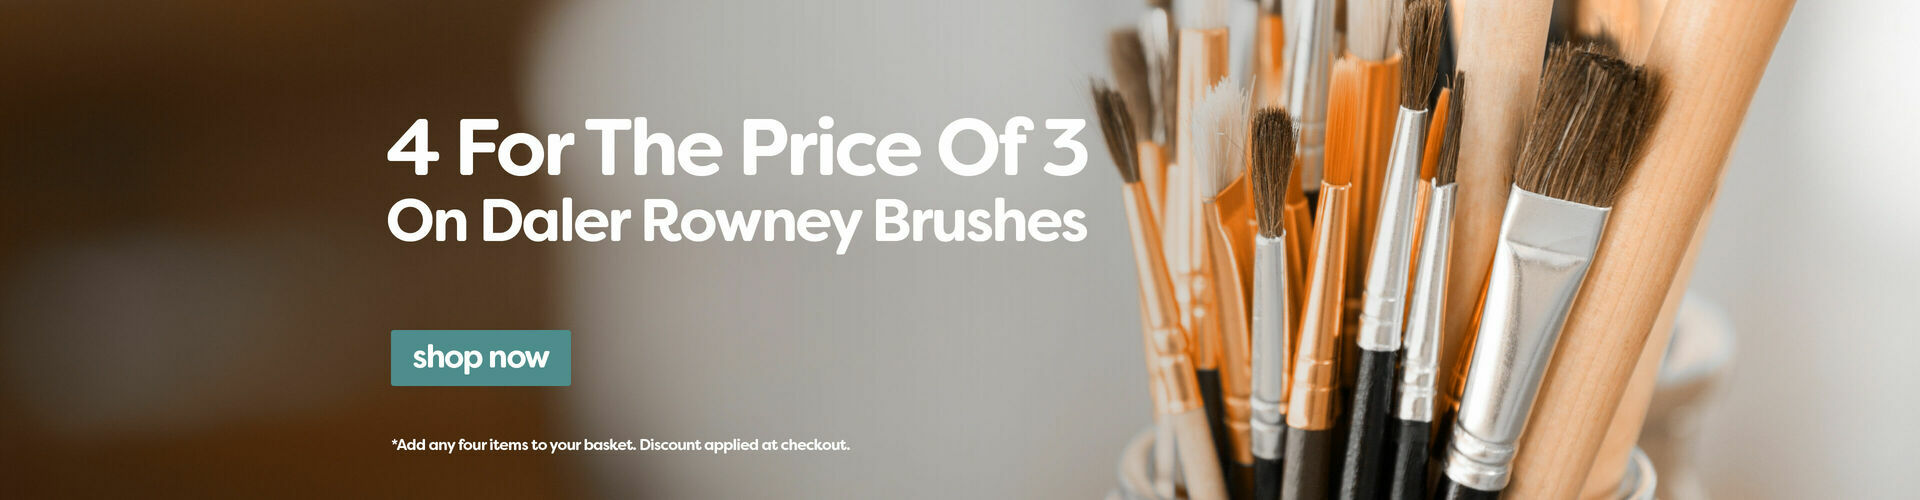 4 For 3 Paint Brushes